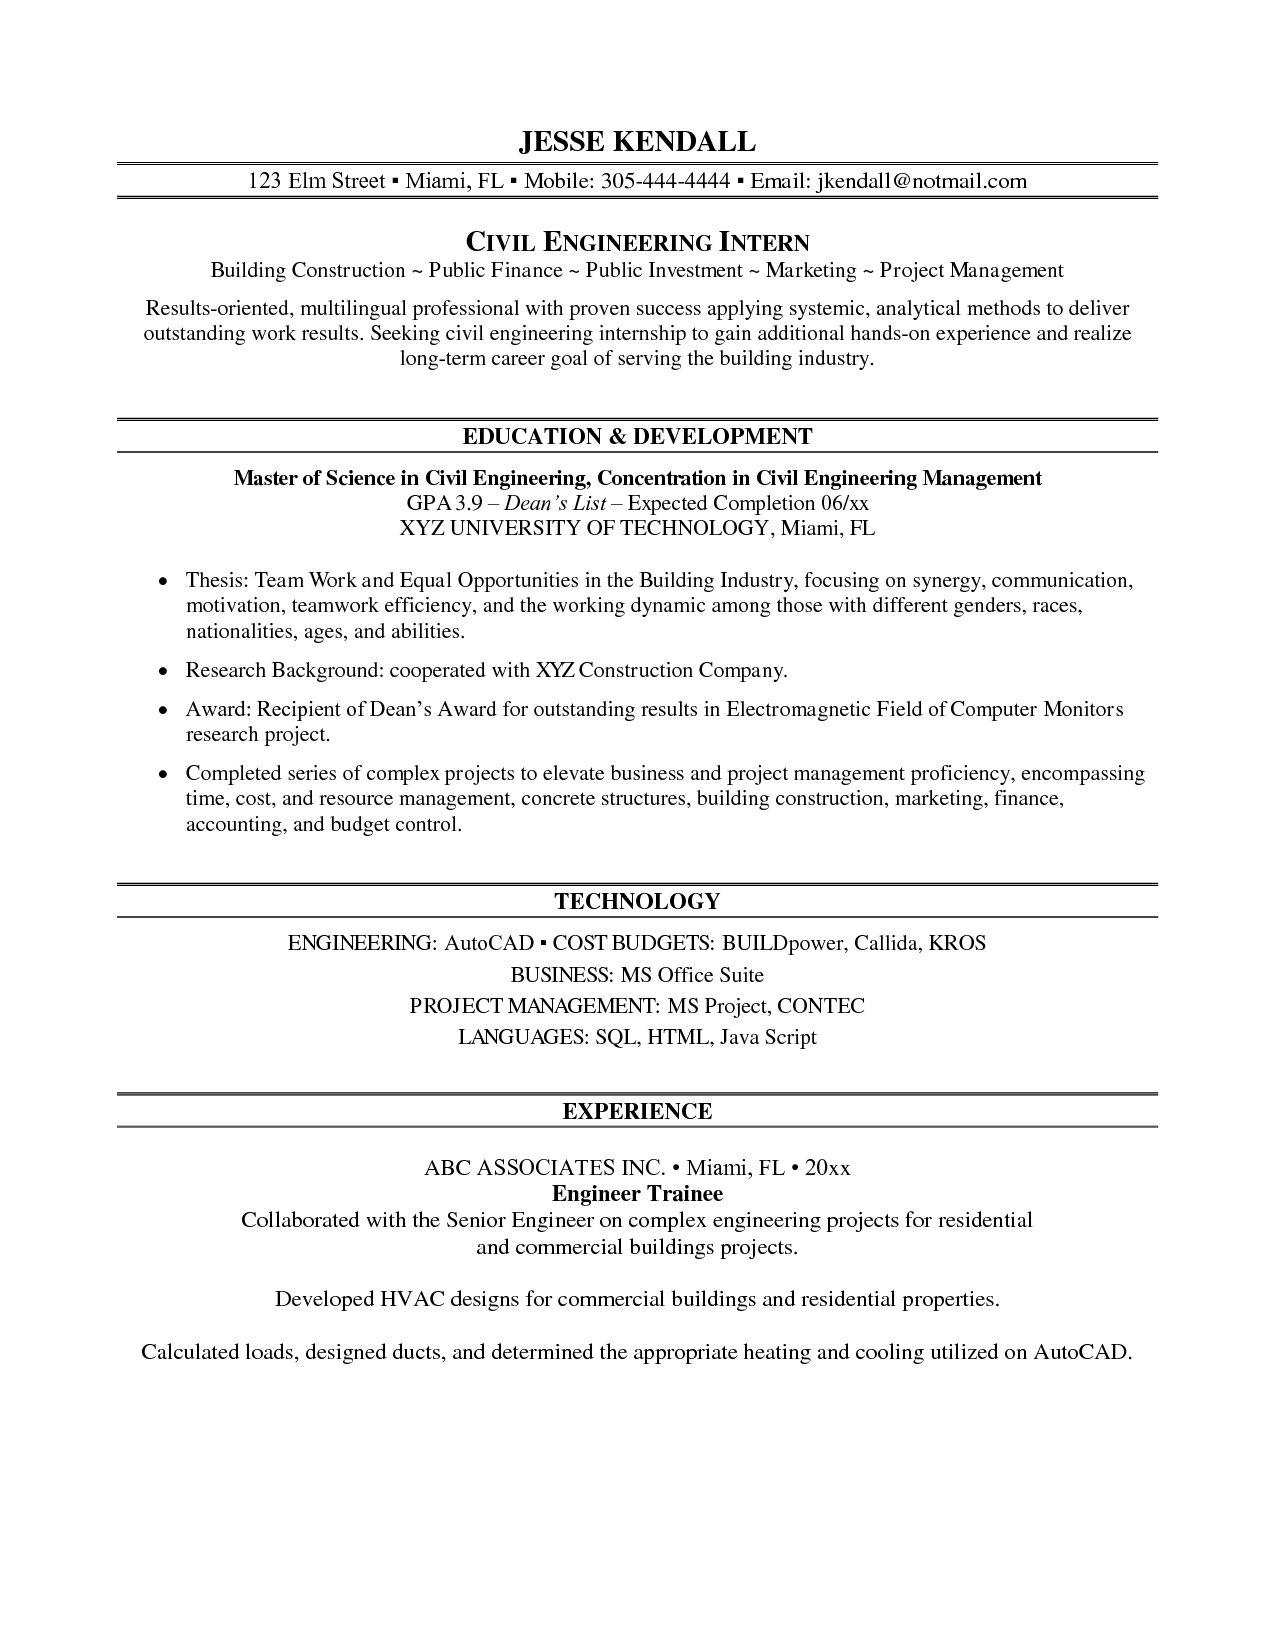 keywords civil engineer intern cover letter examples engineering internship resume free builder best free home design idea inspiration